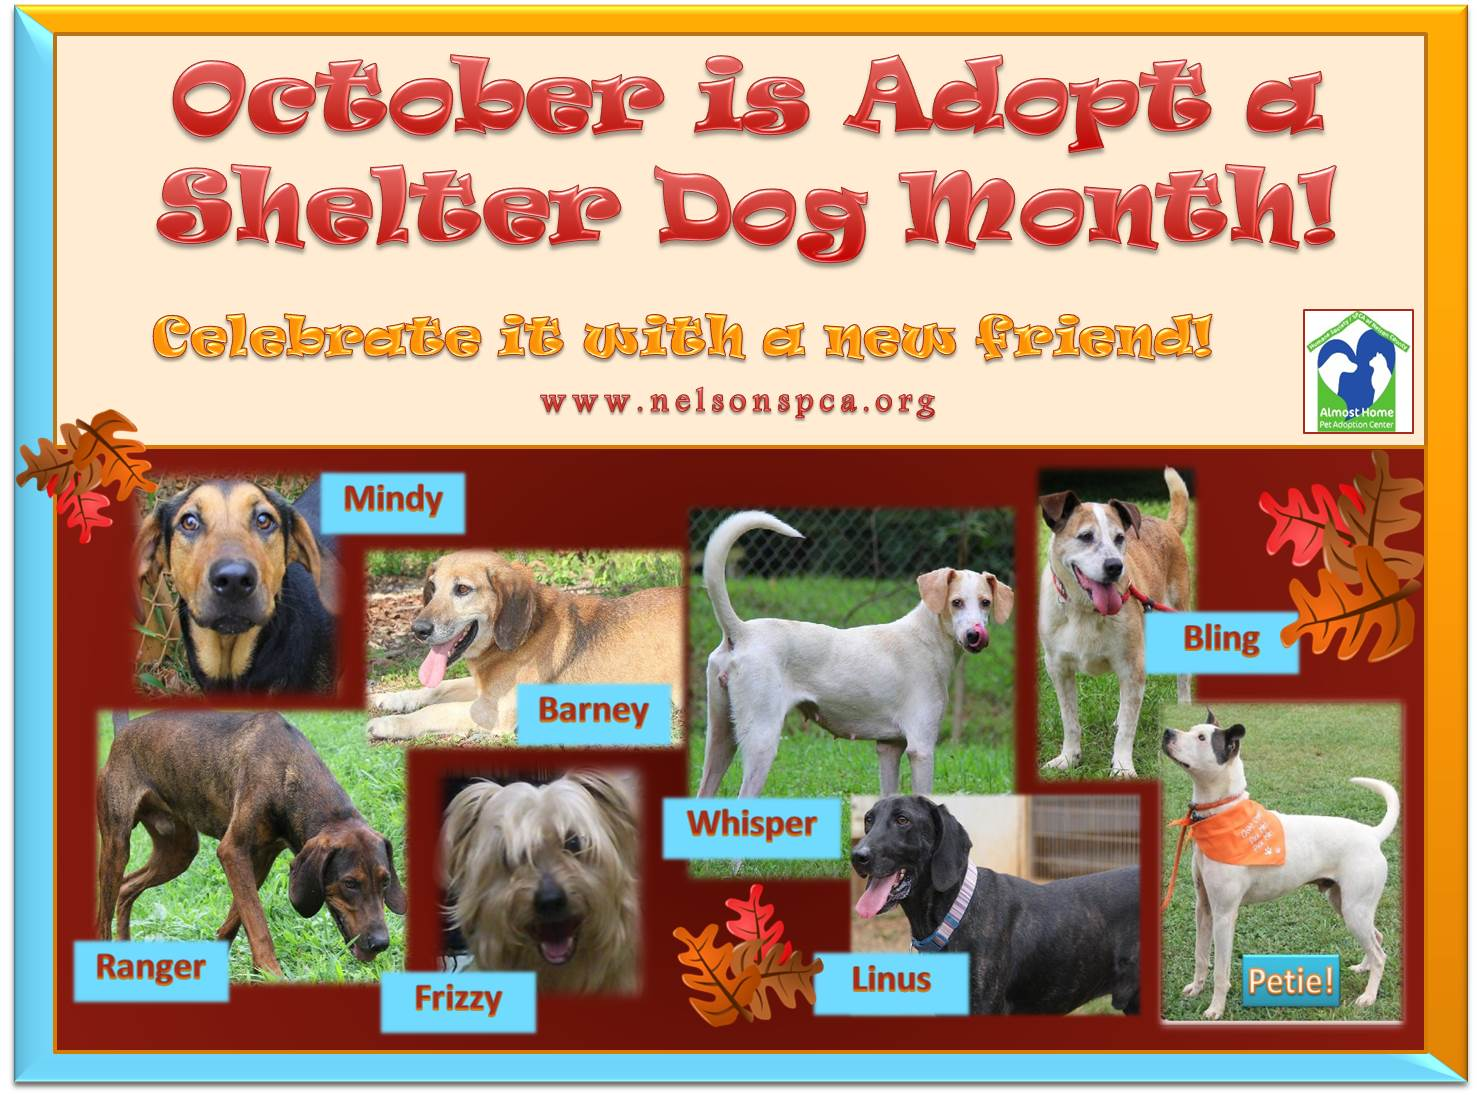 2014-10-1 Home Page - Adopt Shelter Dog Mo.